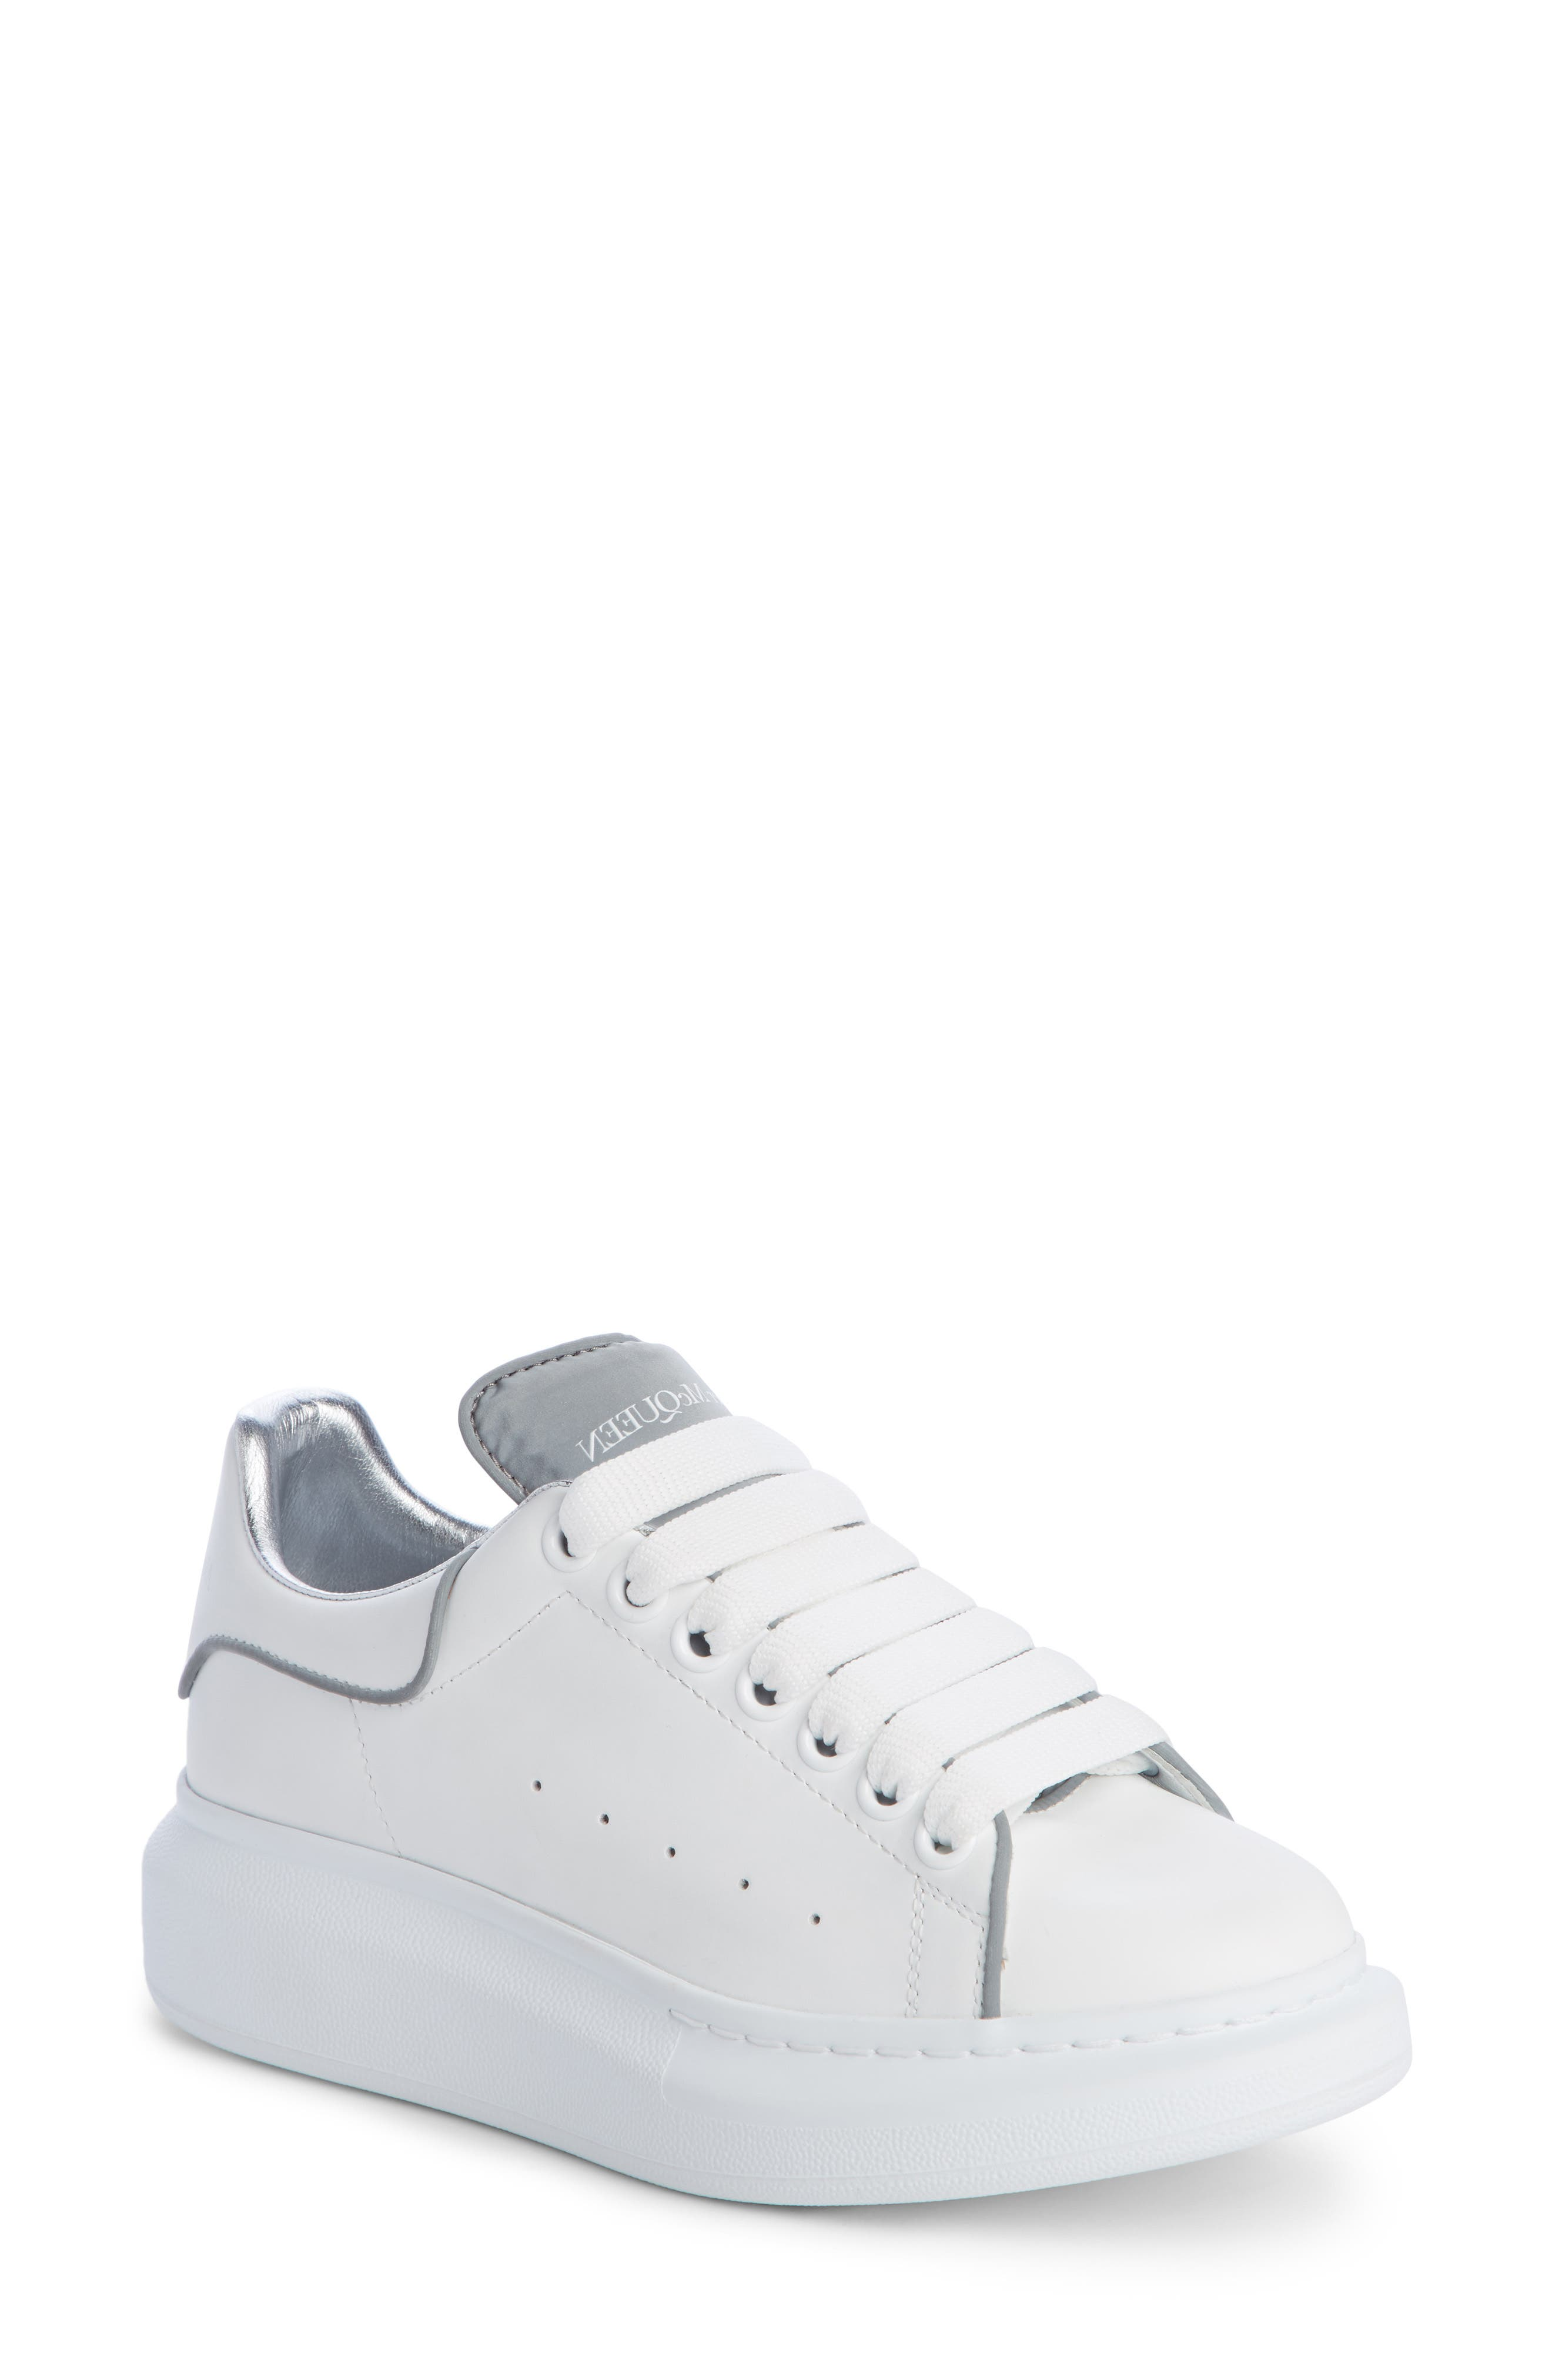 ALEXANDER MCQUEEN Sneaker, Main, color, WHITE/ SILVER PIPING